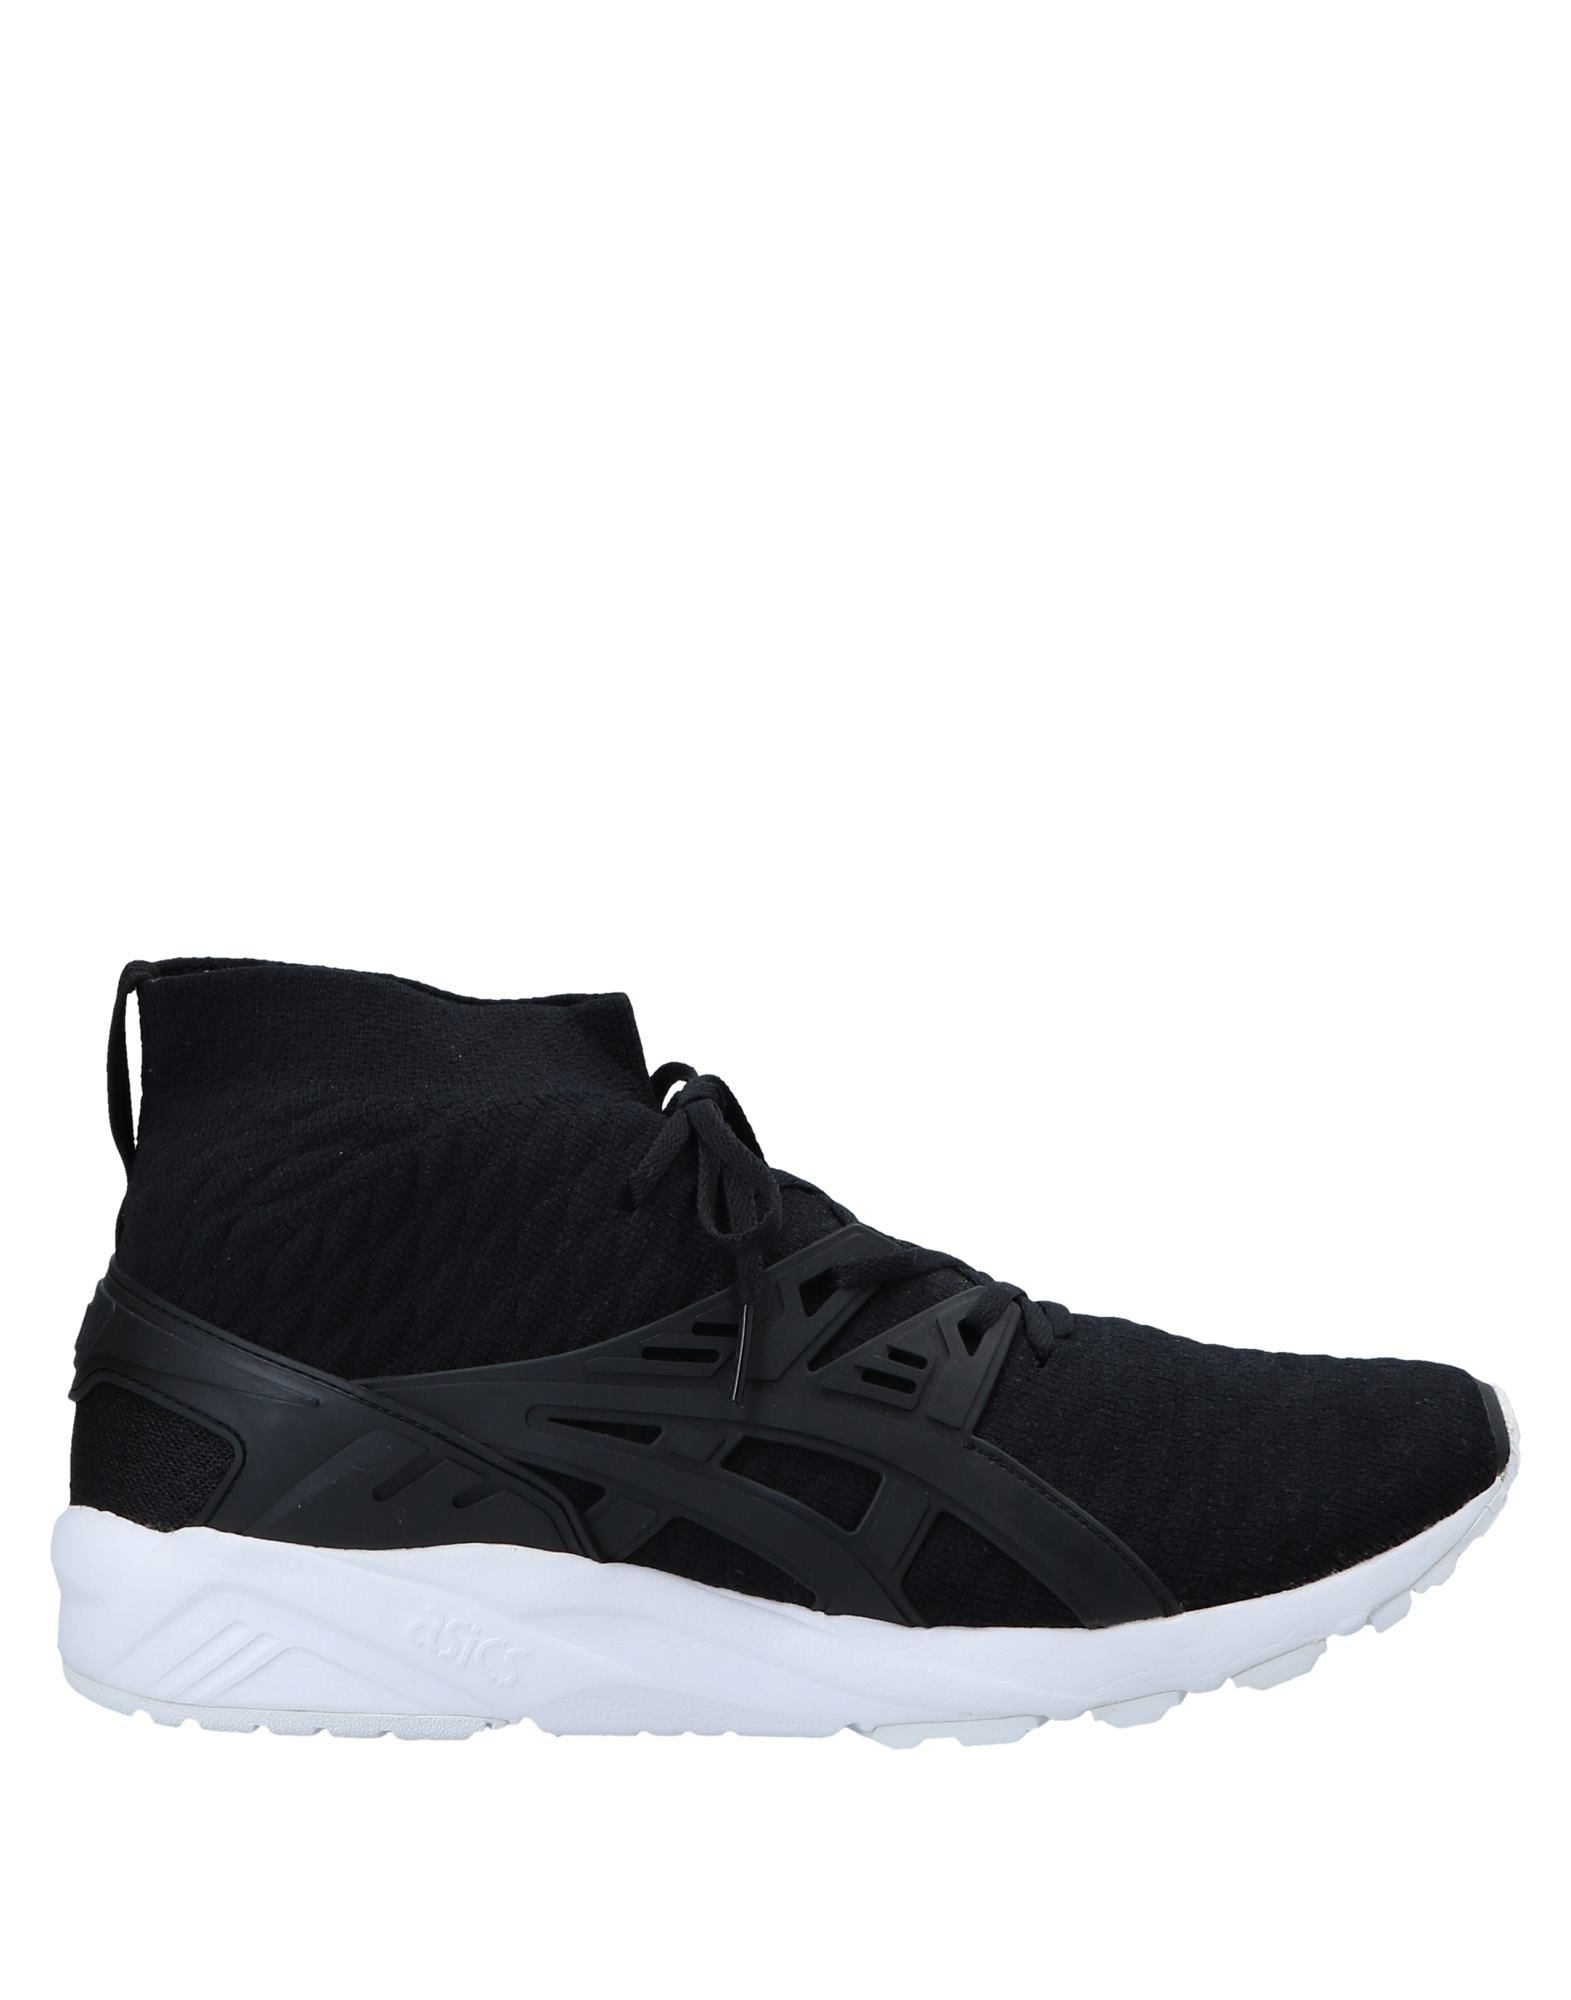 ASICS | ASICS High-tops & sneakers 11546900 | Goxip